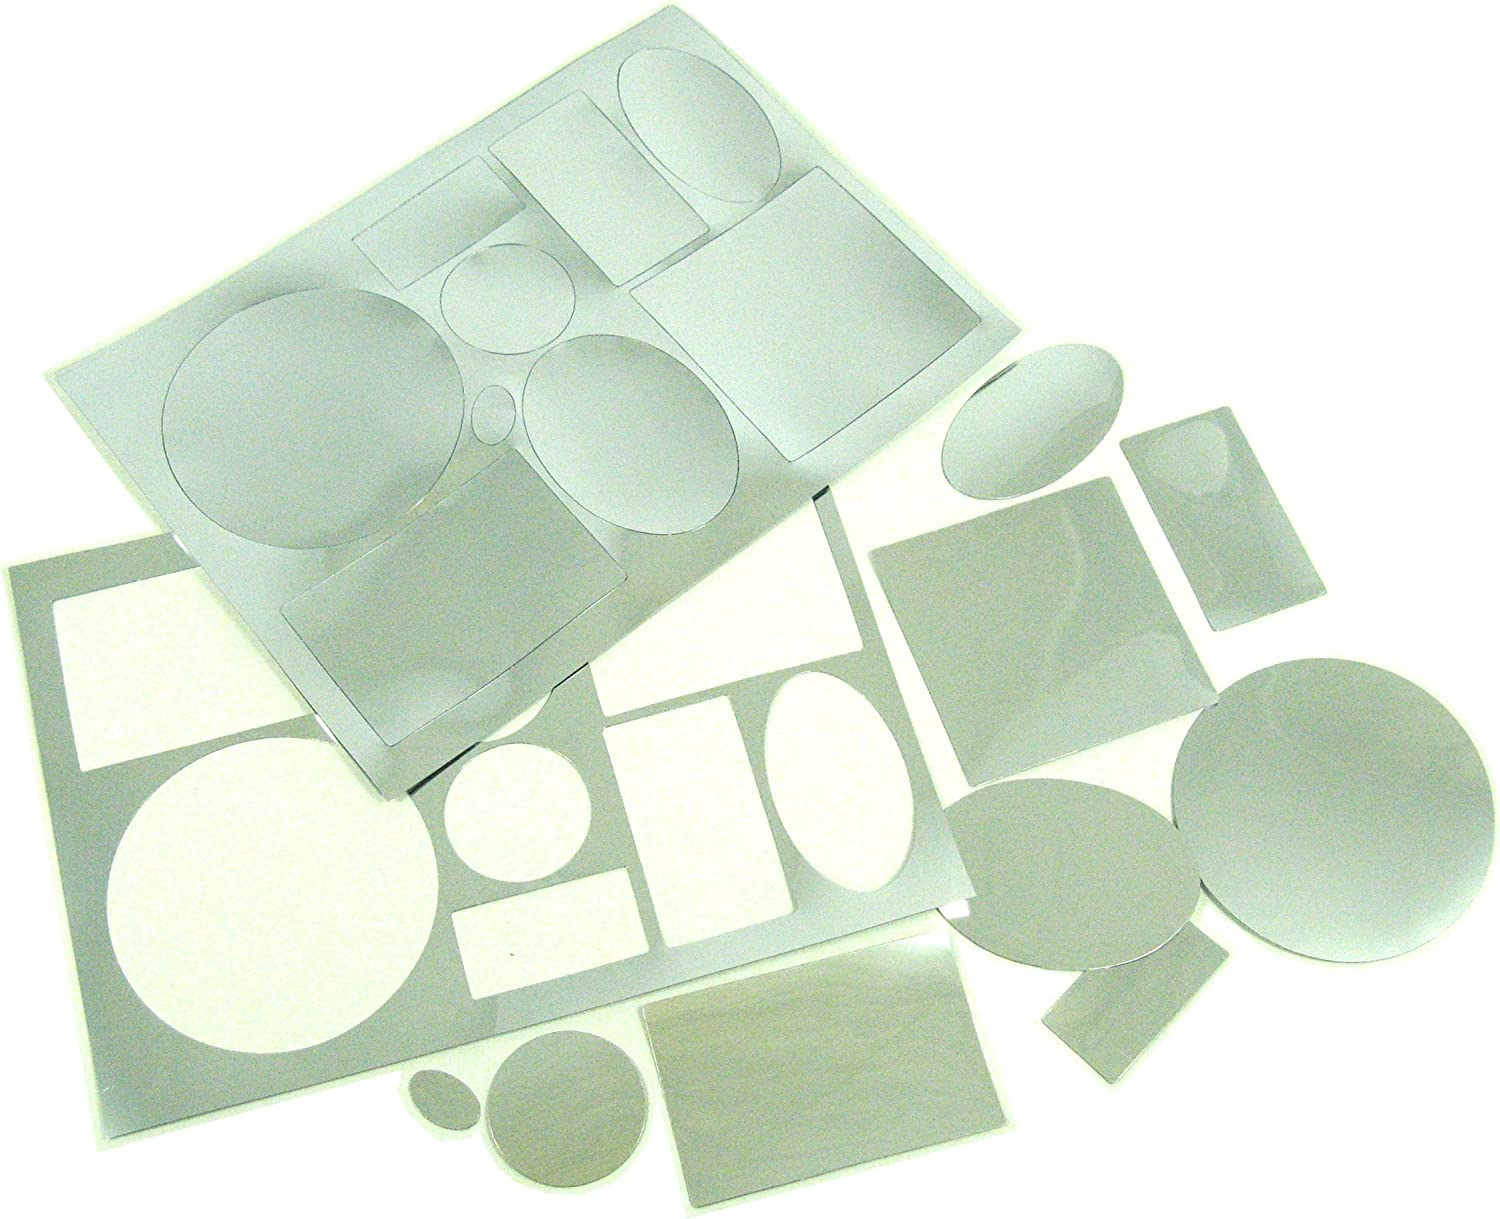 Reflective Die Cut Shapes Creative Crafts 36 Assorted Plastic Mirror Shapes